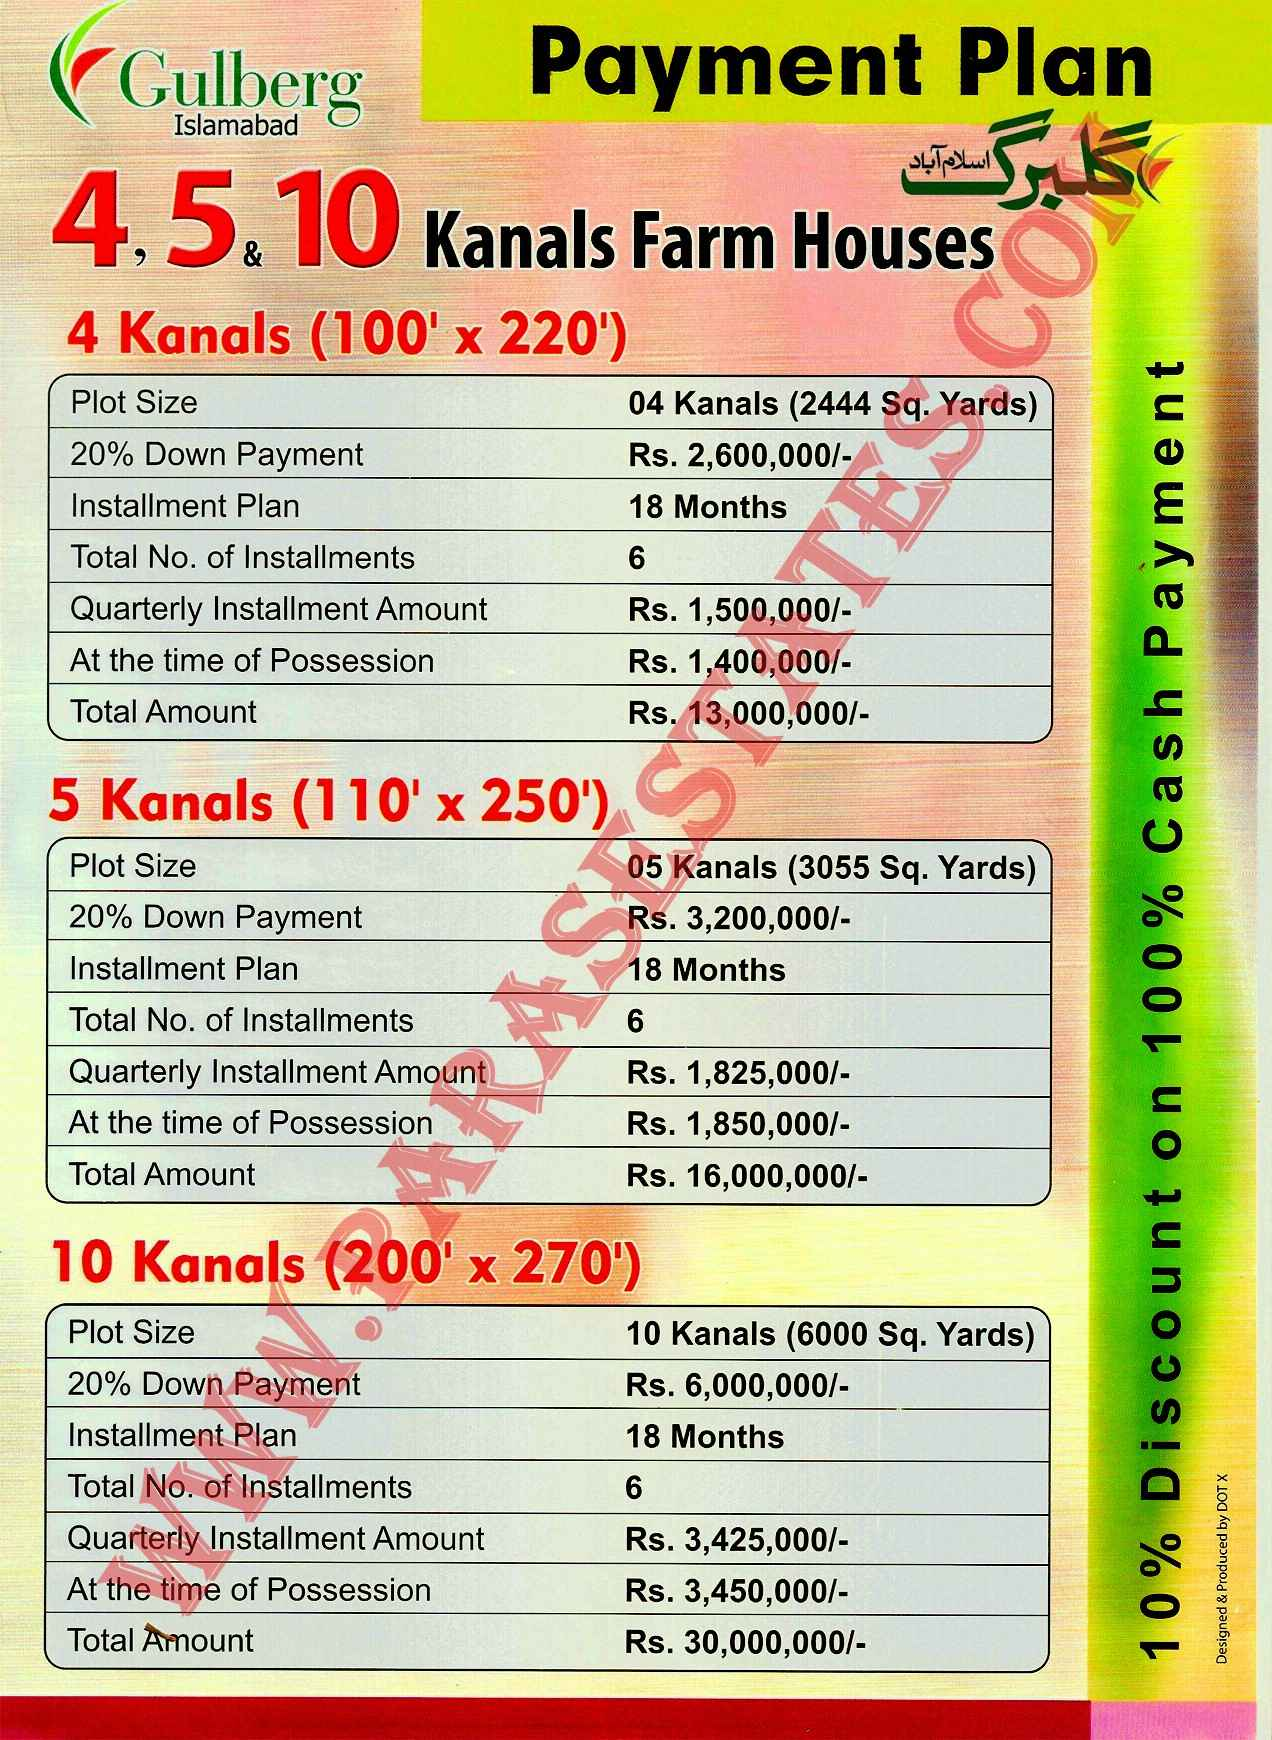 27   Beste farmhouse in karachi for Farmhouse In Karachi Rates  150ifm